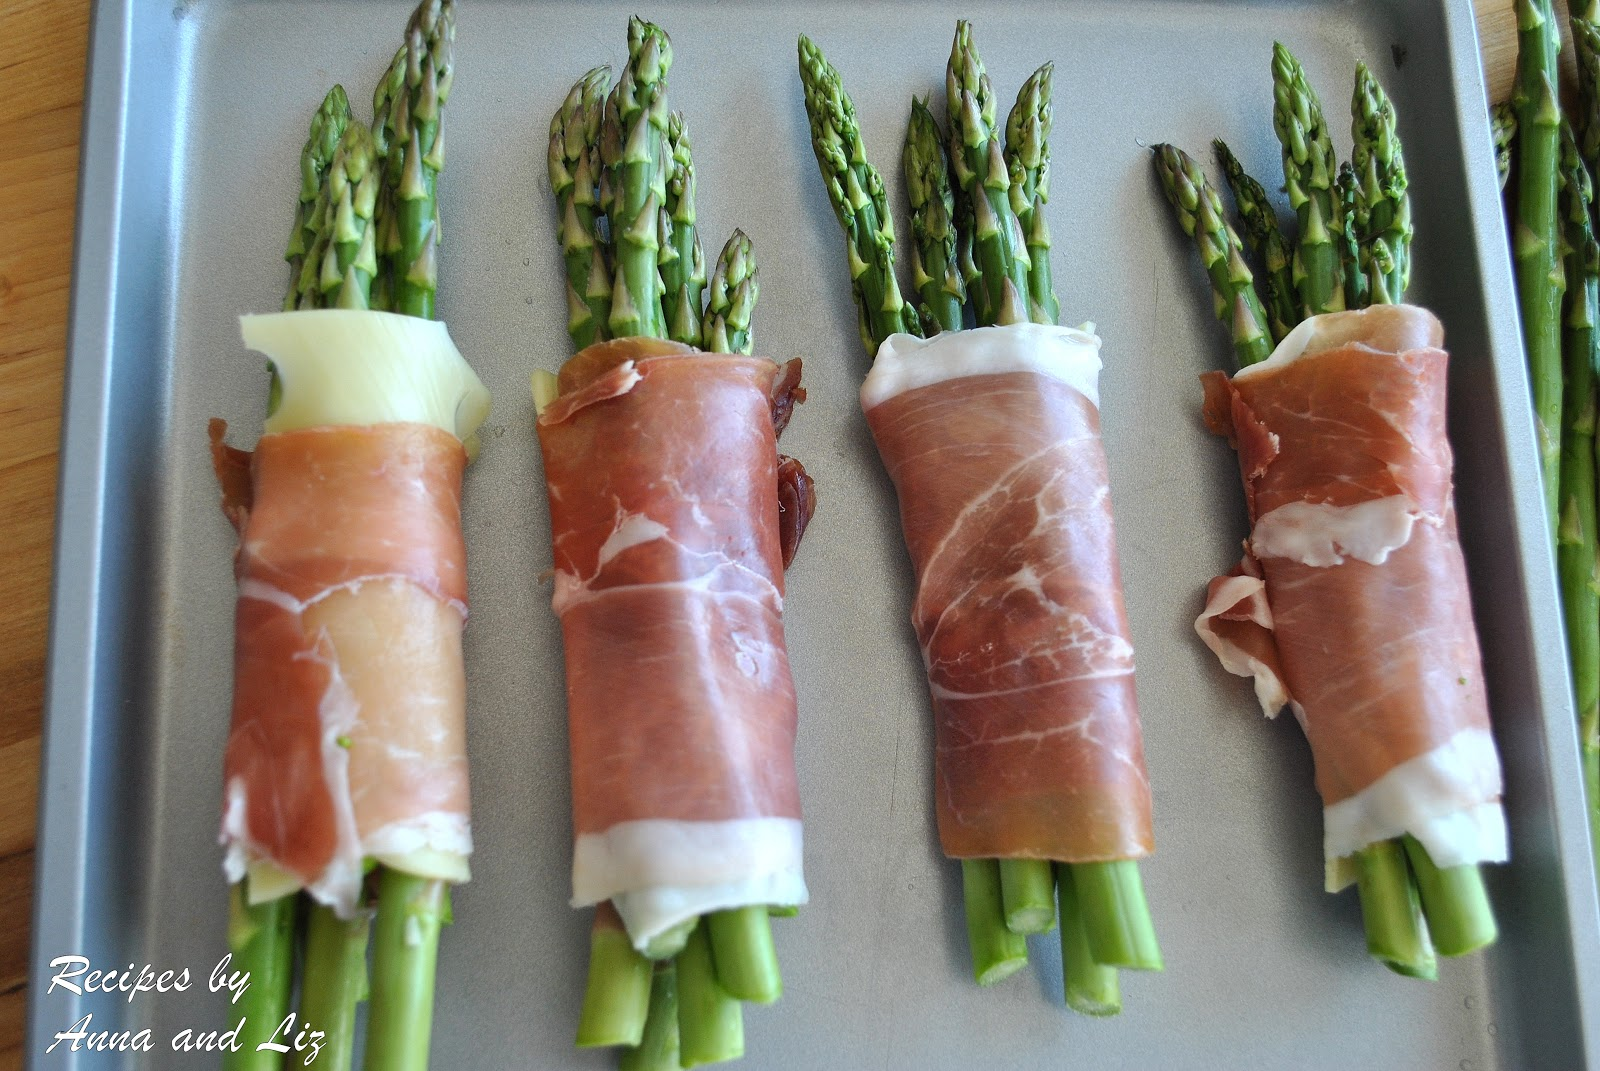 ... ... by Anna and Liz: Roasted Asparagus with Prosciutto and Cheese